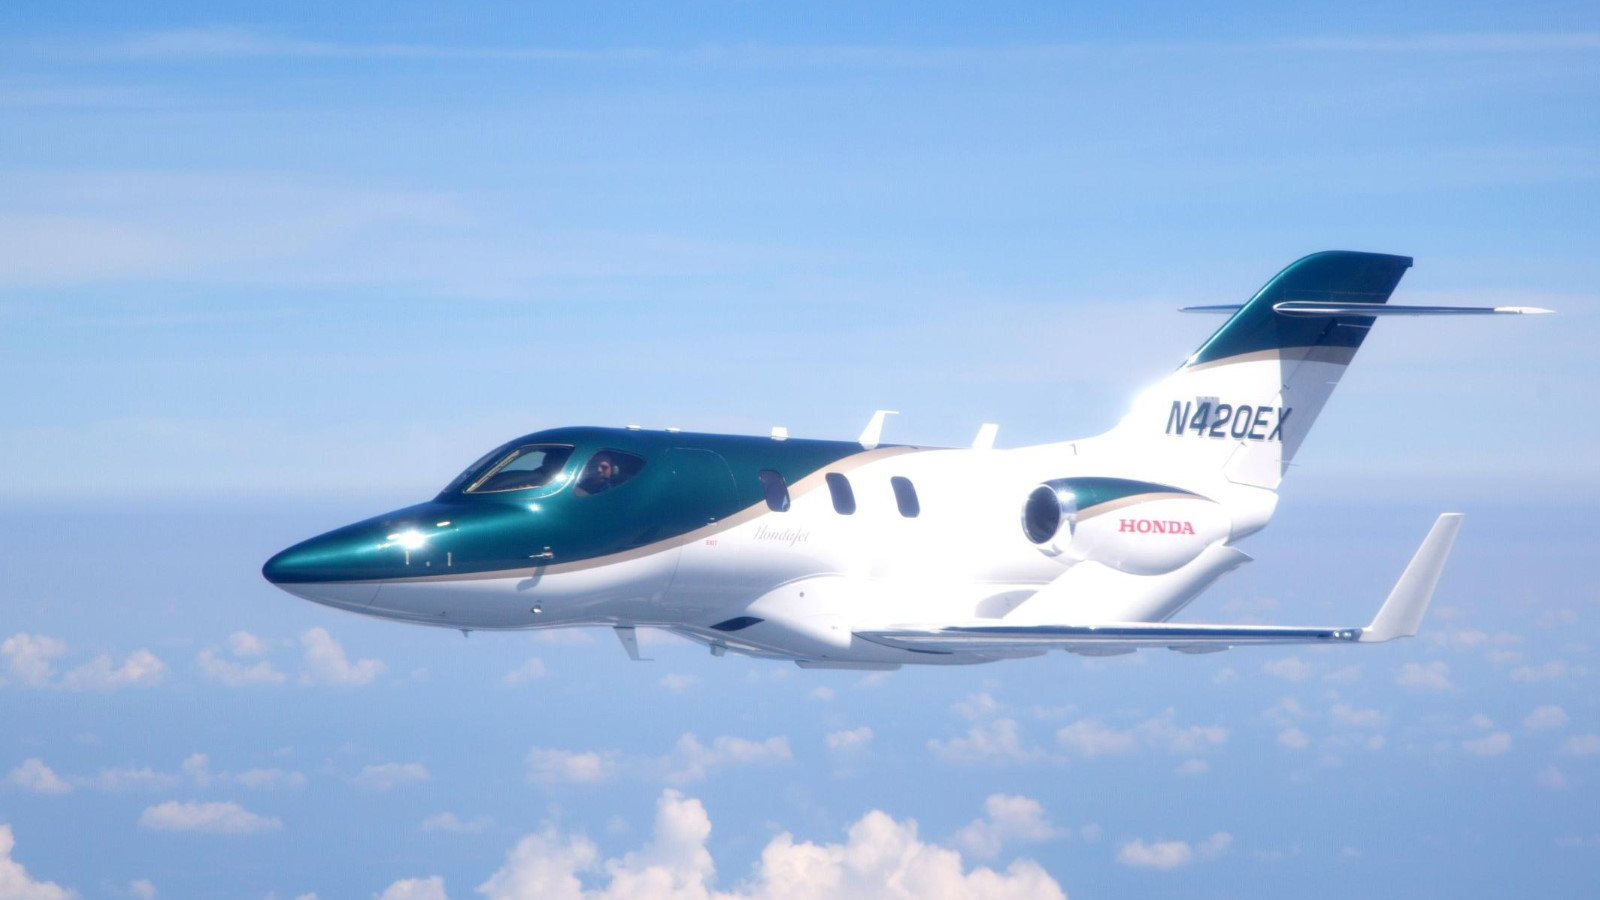 HondaJet aircraft takes its maiden flight